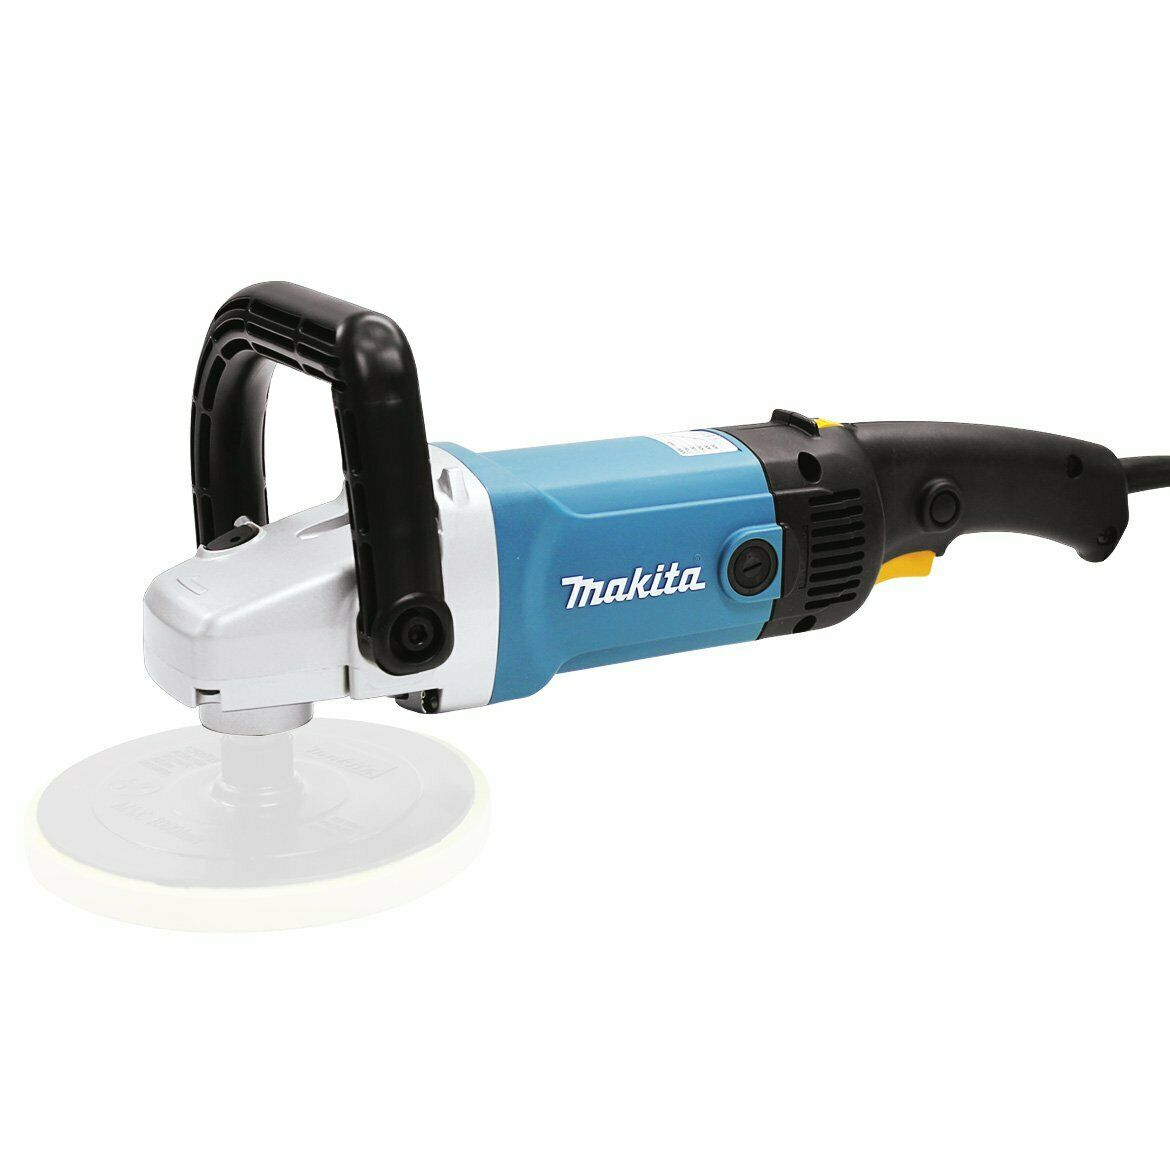 9227C factory_authorized_outlet Makita 9227C 7 In 120V Powerful 10 Amp Motor Electronic Sander-Polisher